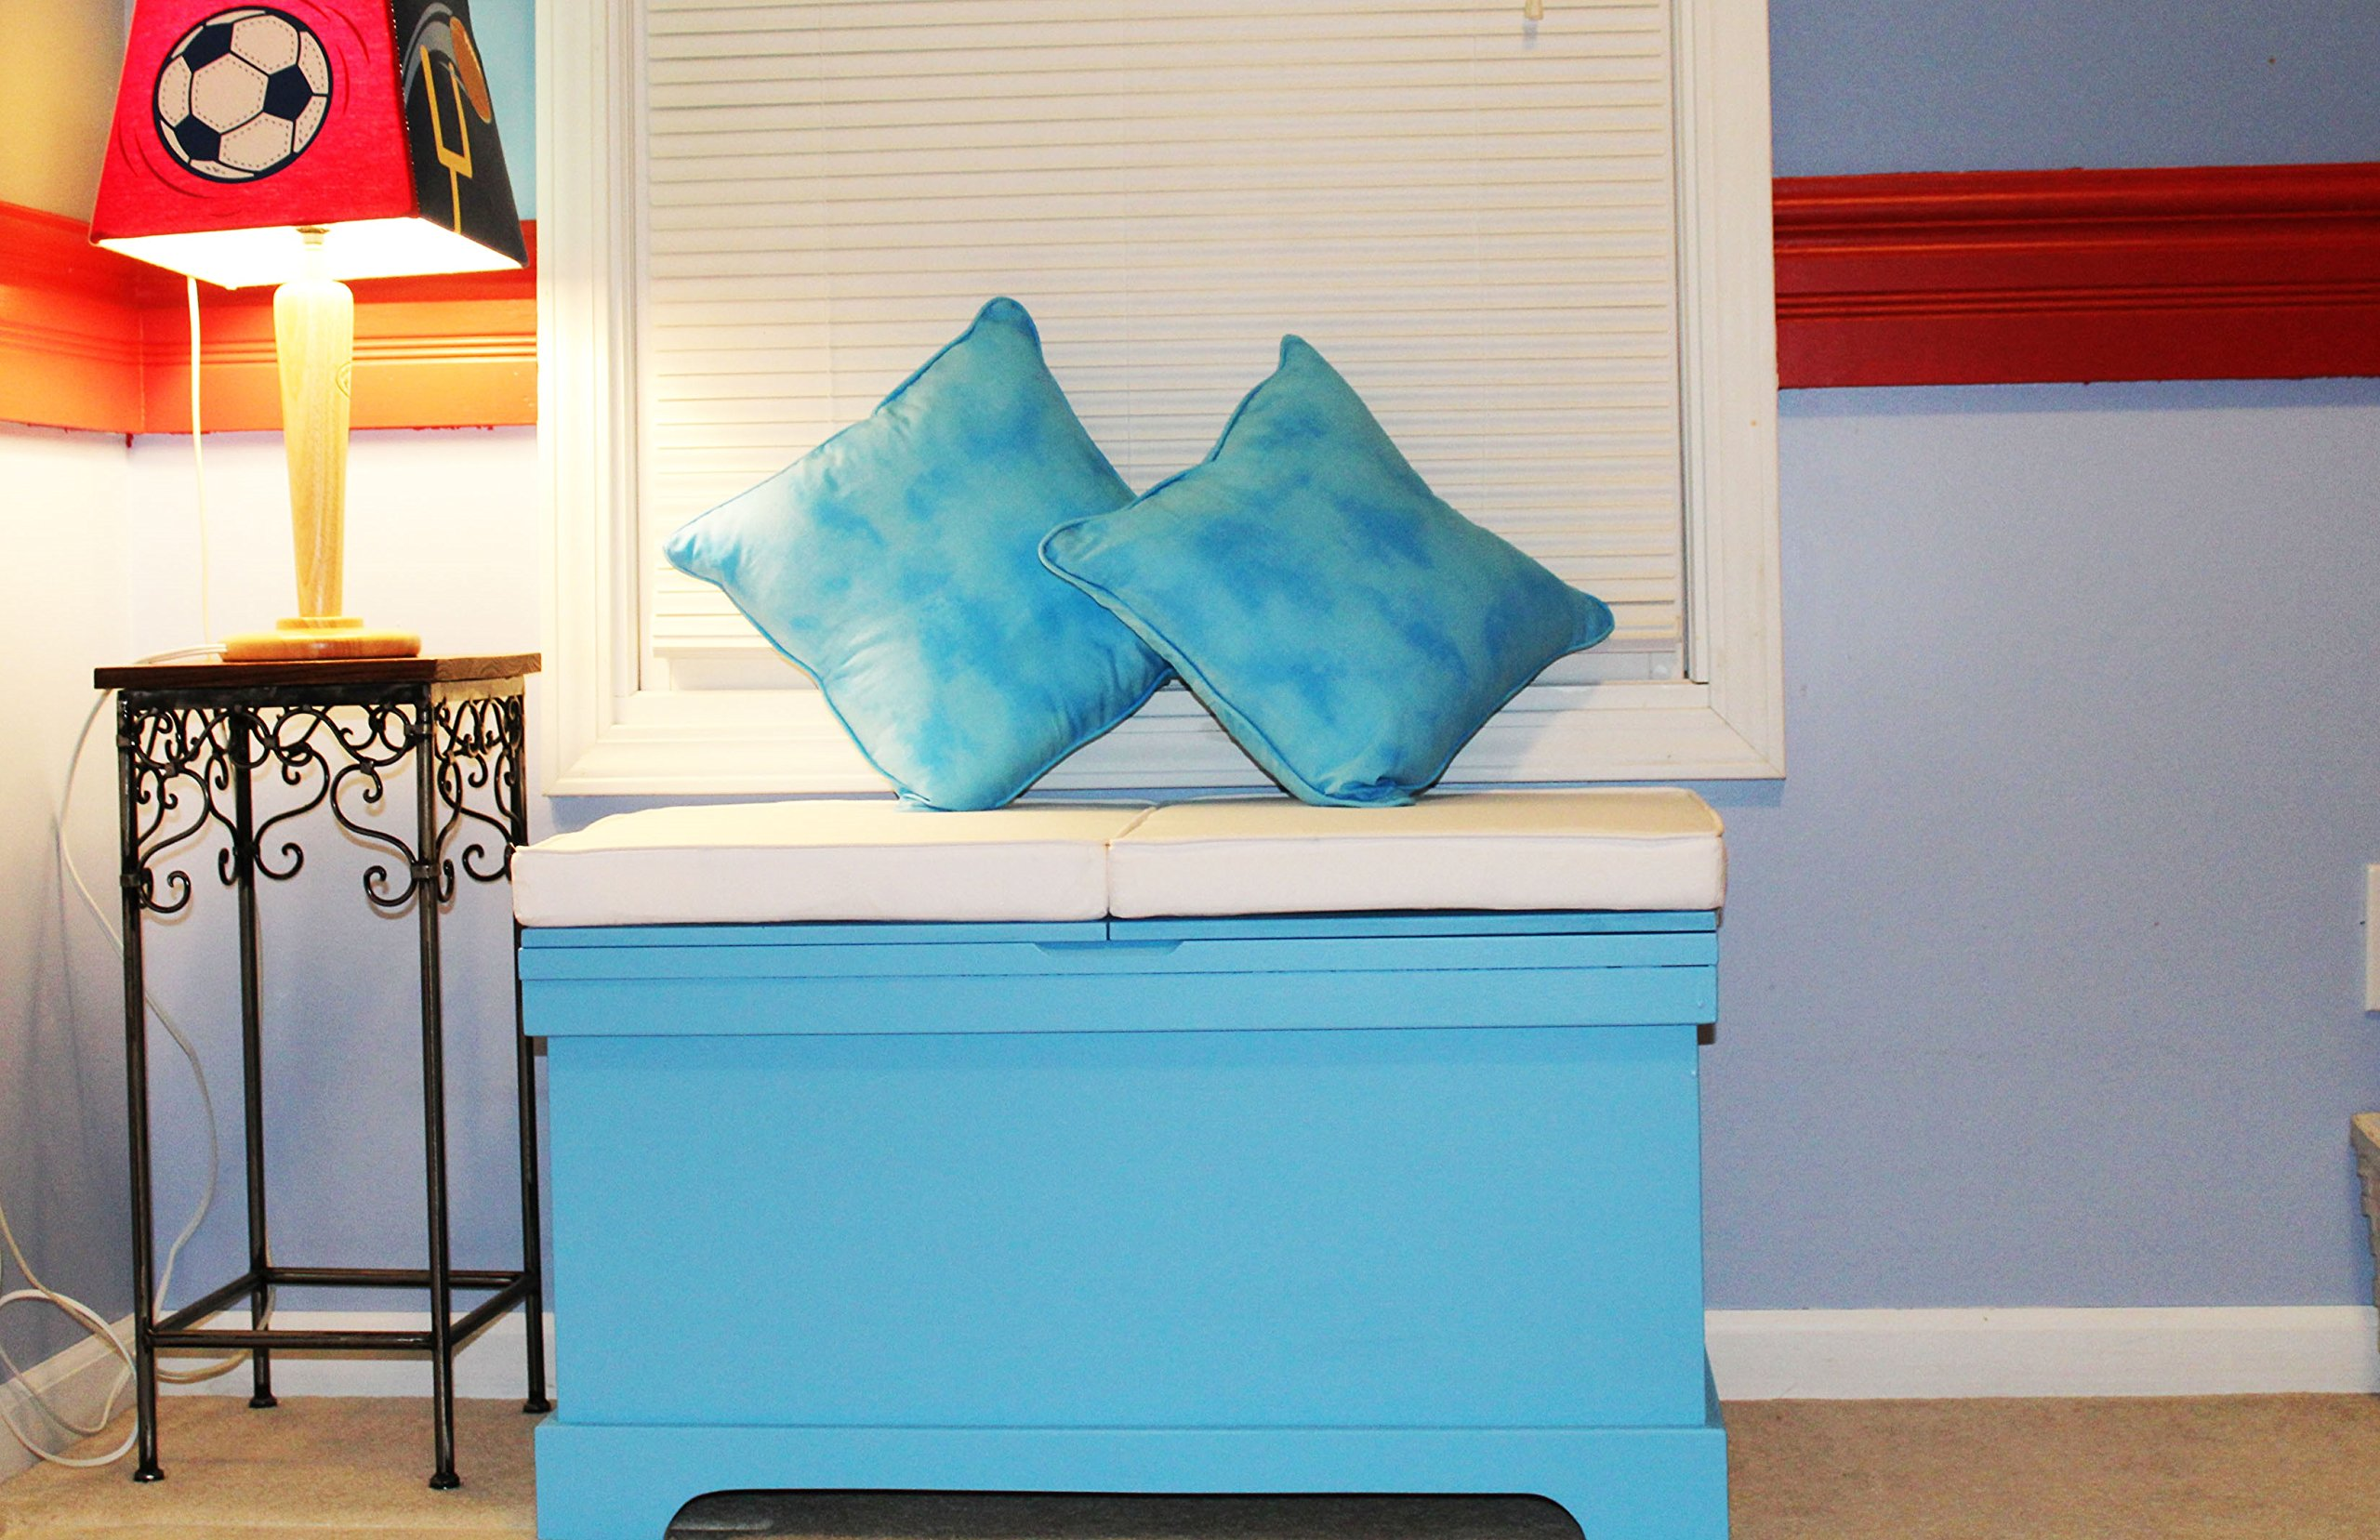 FireSkape The Baylee Window Seat Toy Box with Built in Left Hand Oriented Safety Ladder Compartment in Little Boy Blue